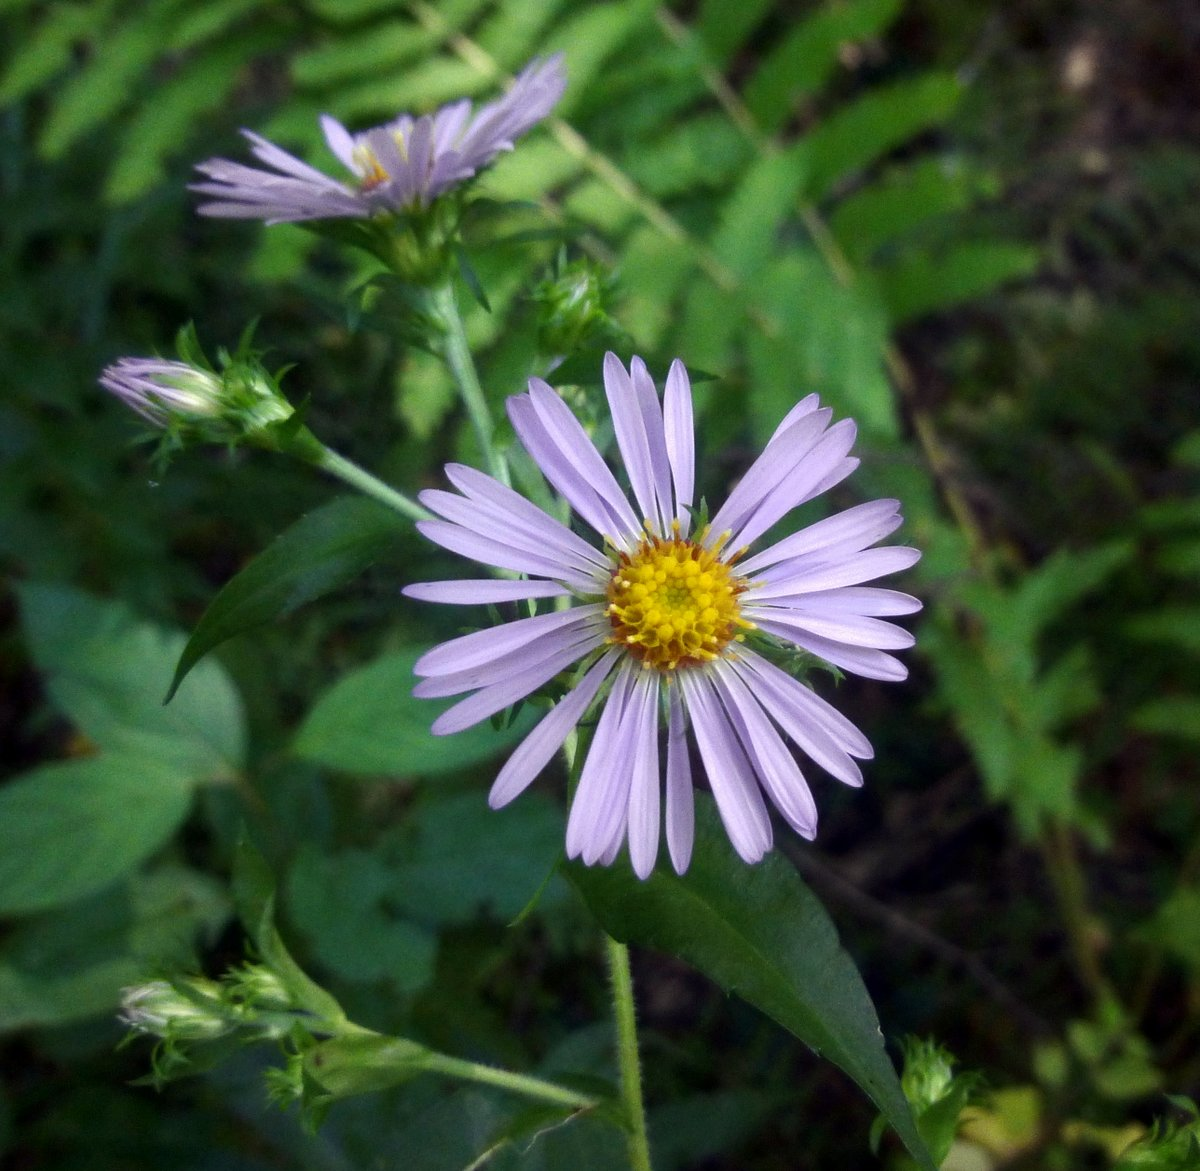 Early september flowers new hampshire garden solutions there are many flowers that bloom in september but most just whisper of the passing of seasons new england asters shout that september has arrived mightylinksfo